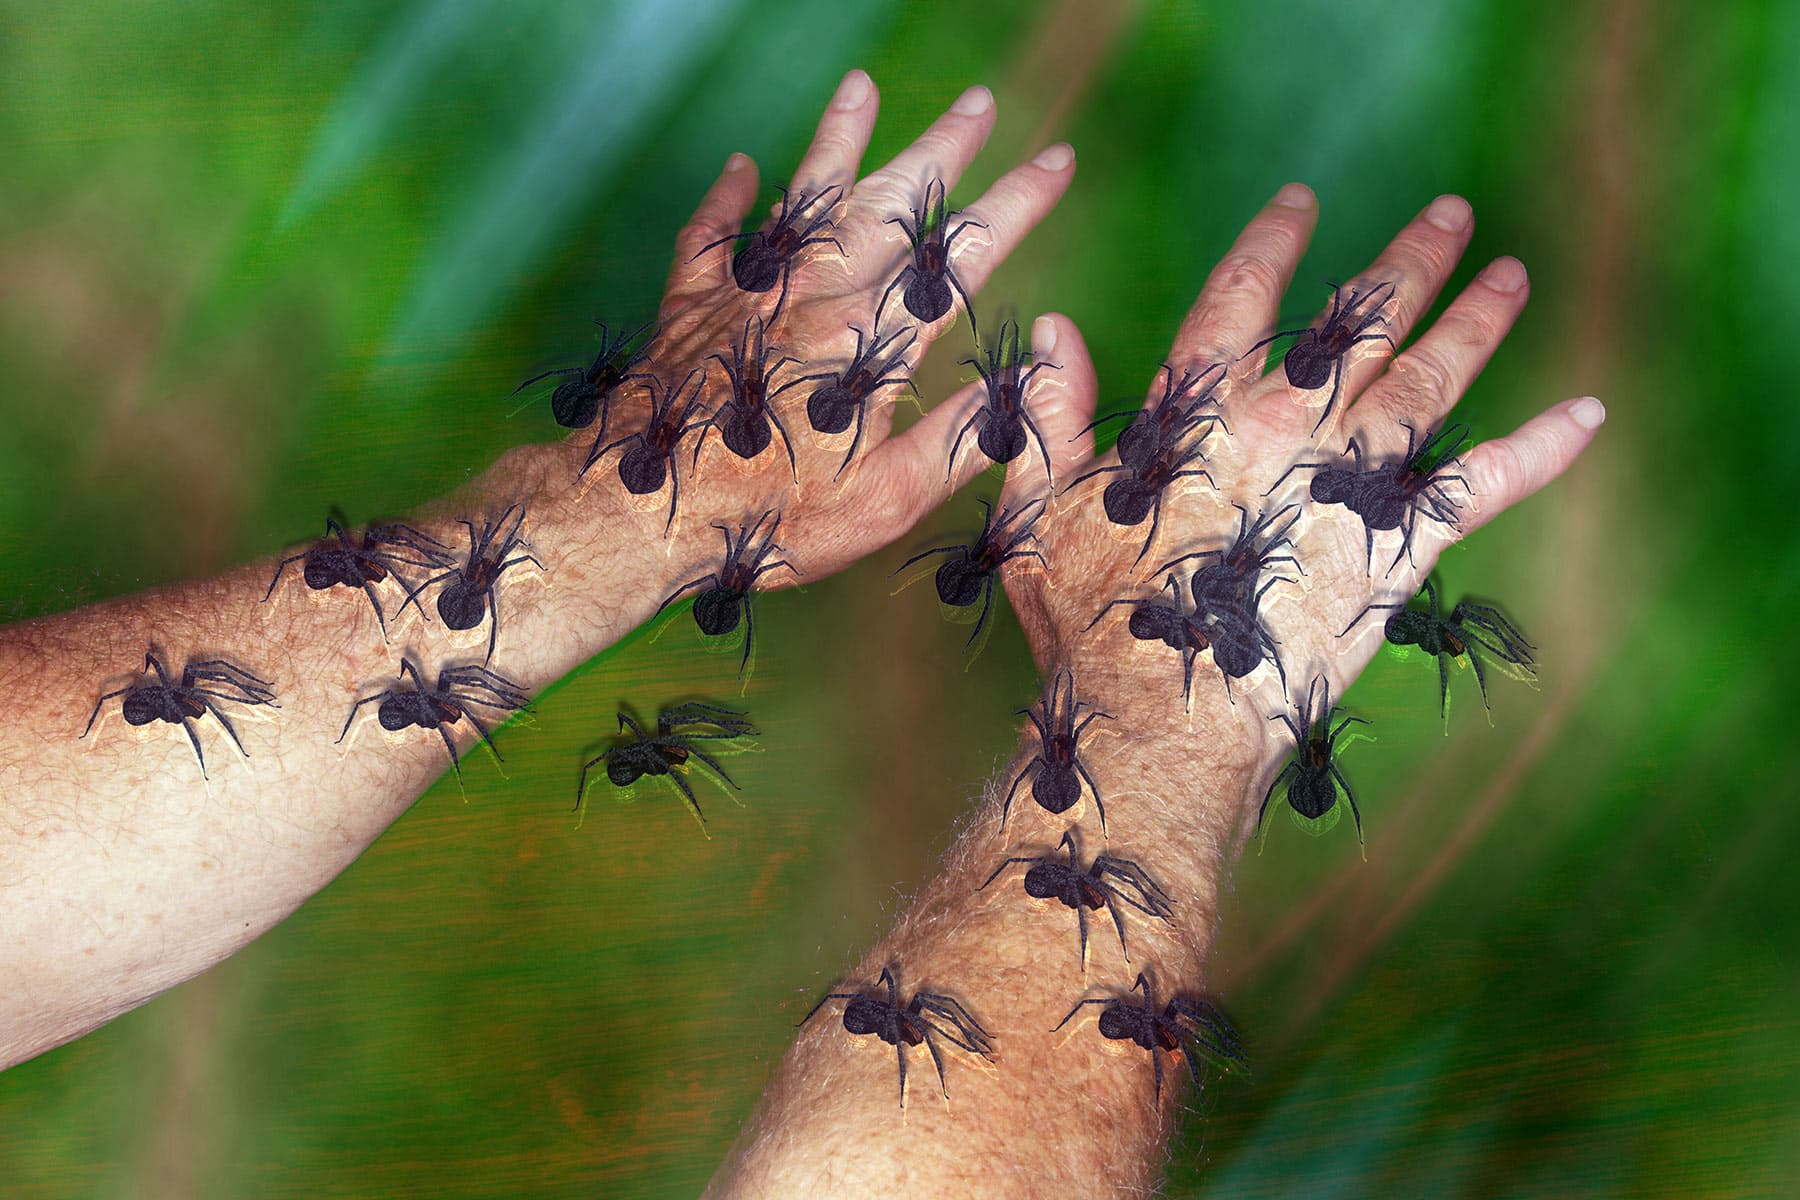 photo of tactile hallucination with spiders